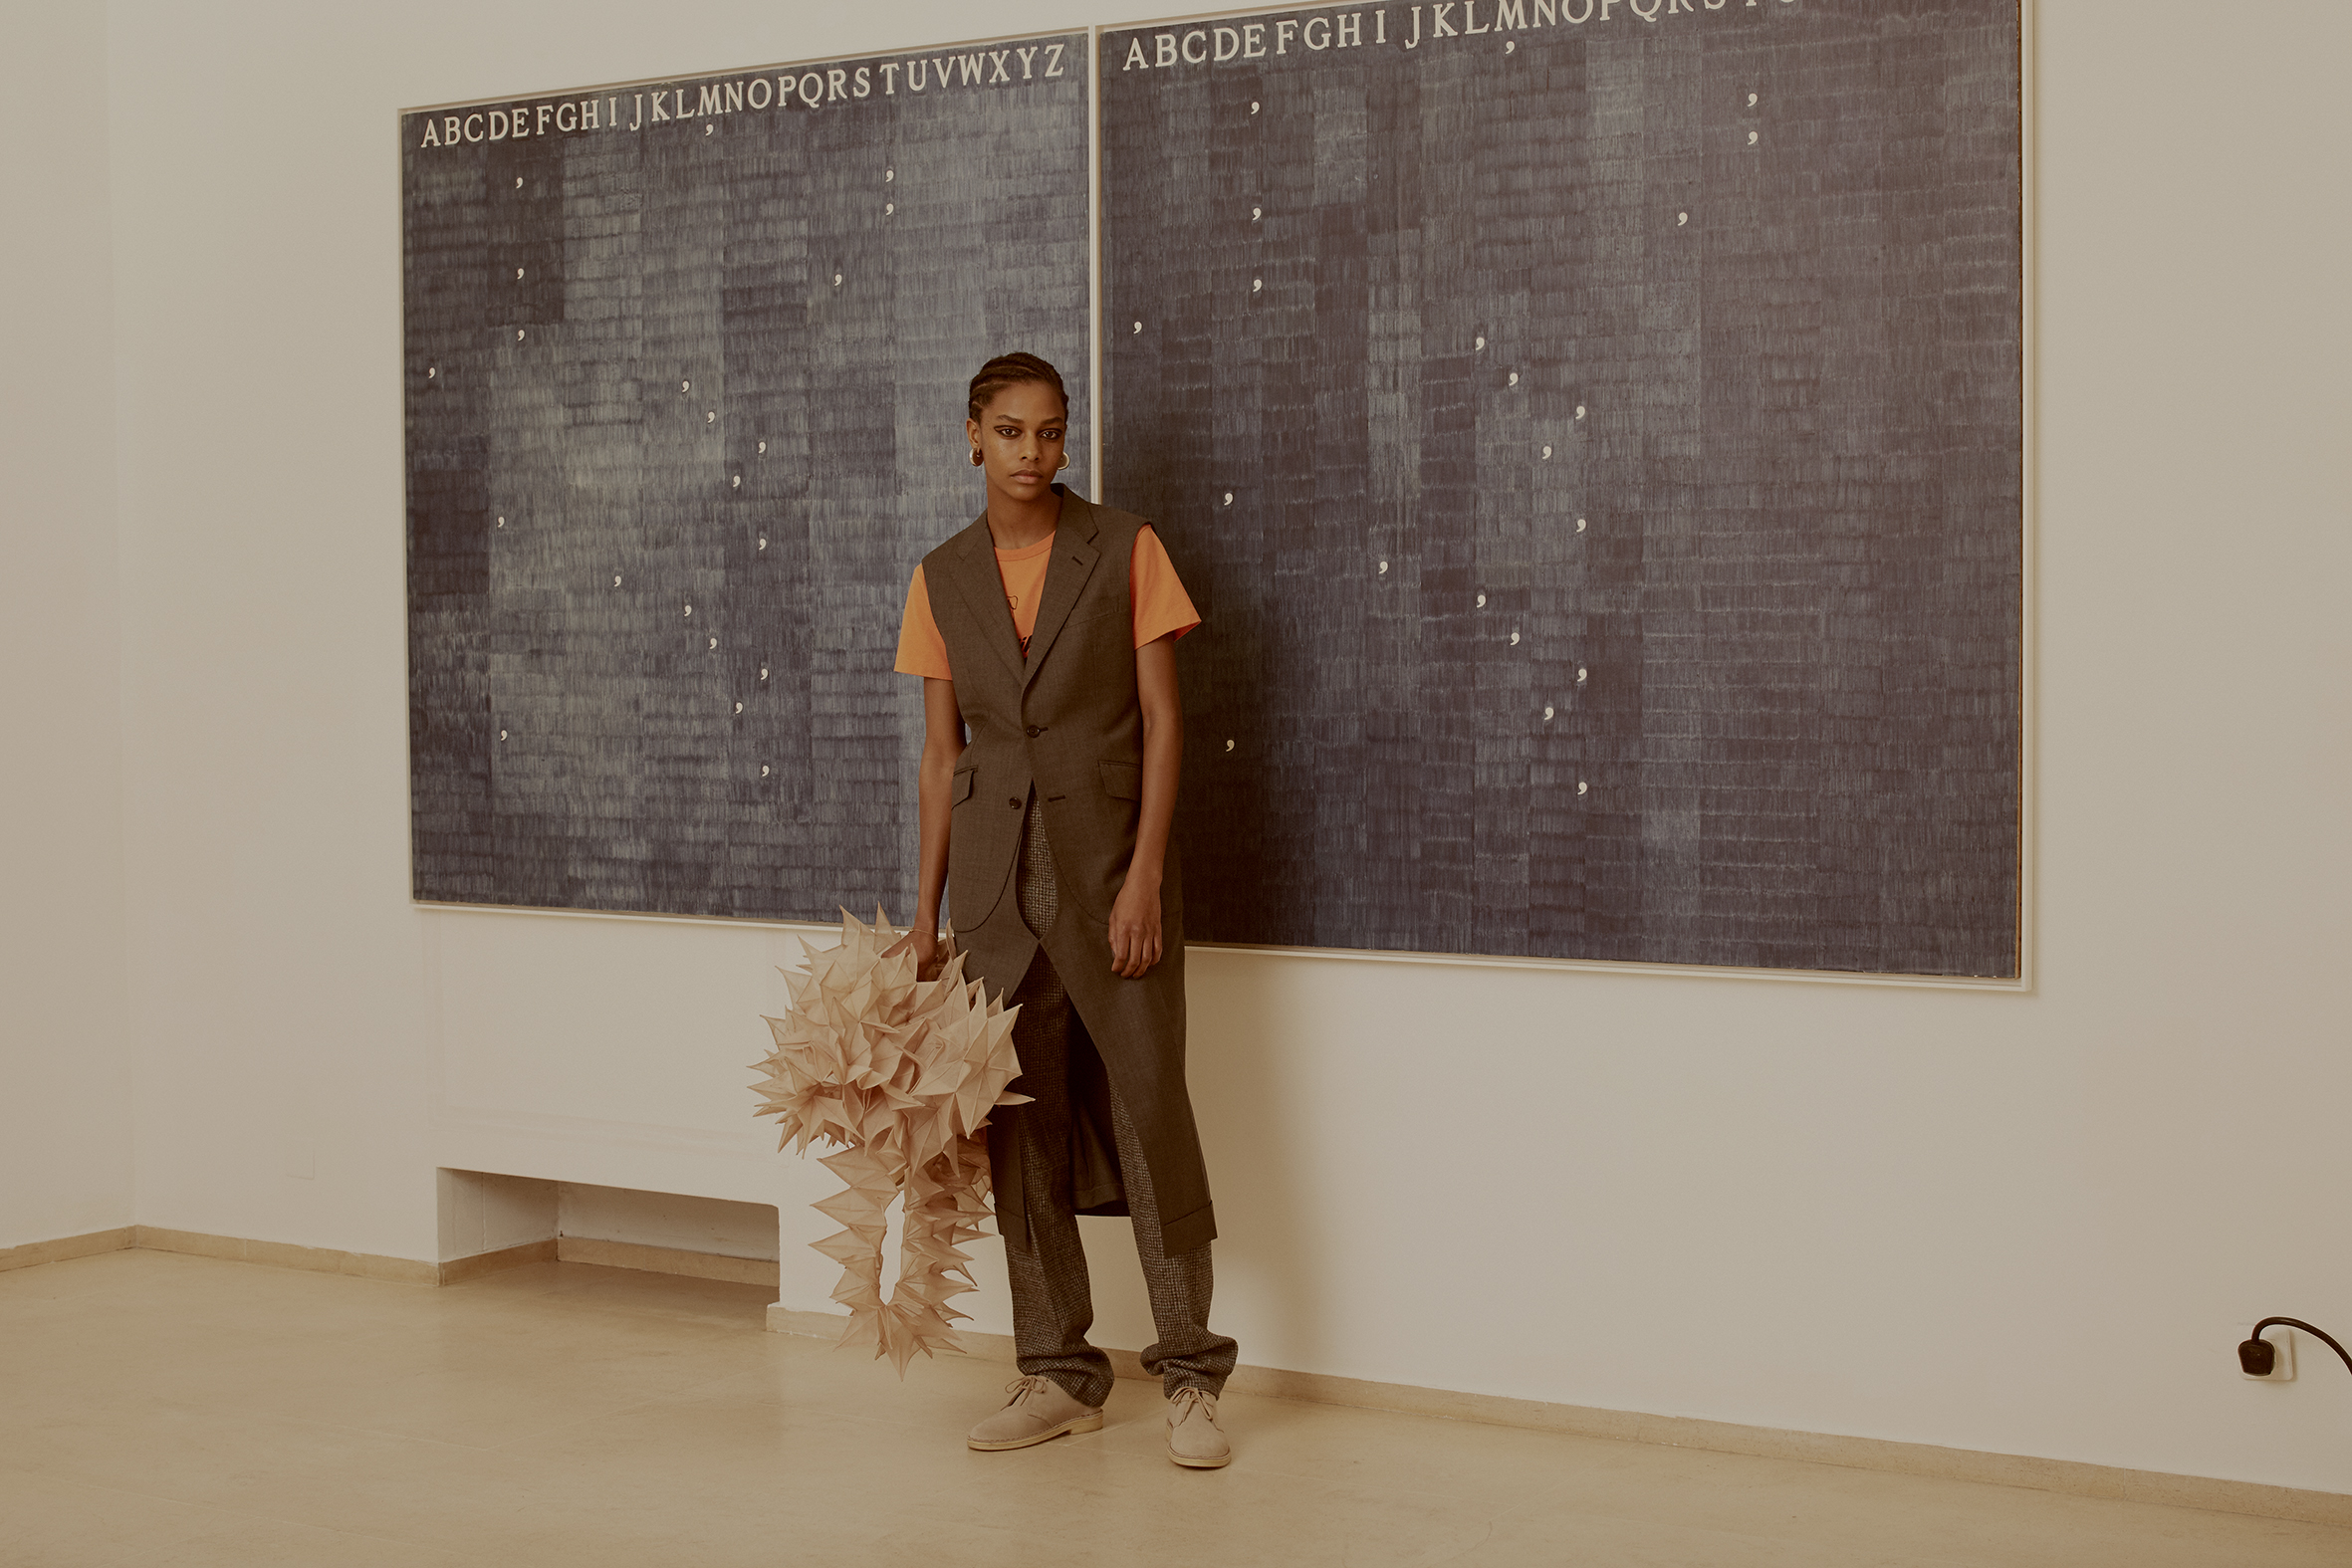 Alighiero Boetti, Mettere al mondo il mondo, 1972-73.  Wool long tunic waistcoat, orange printed t-shirt and three dimensional spikes dress JUNYA WATANABE COMME DES GARÇONS, wool tweed trousers HOLLAND & HOLLAND, silver brass earrings CÉLINE,suede desert boots CLARKS